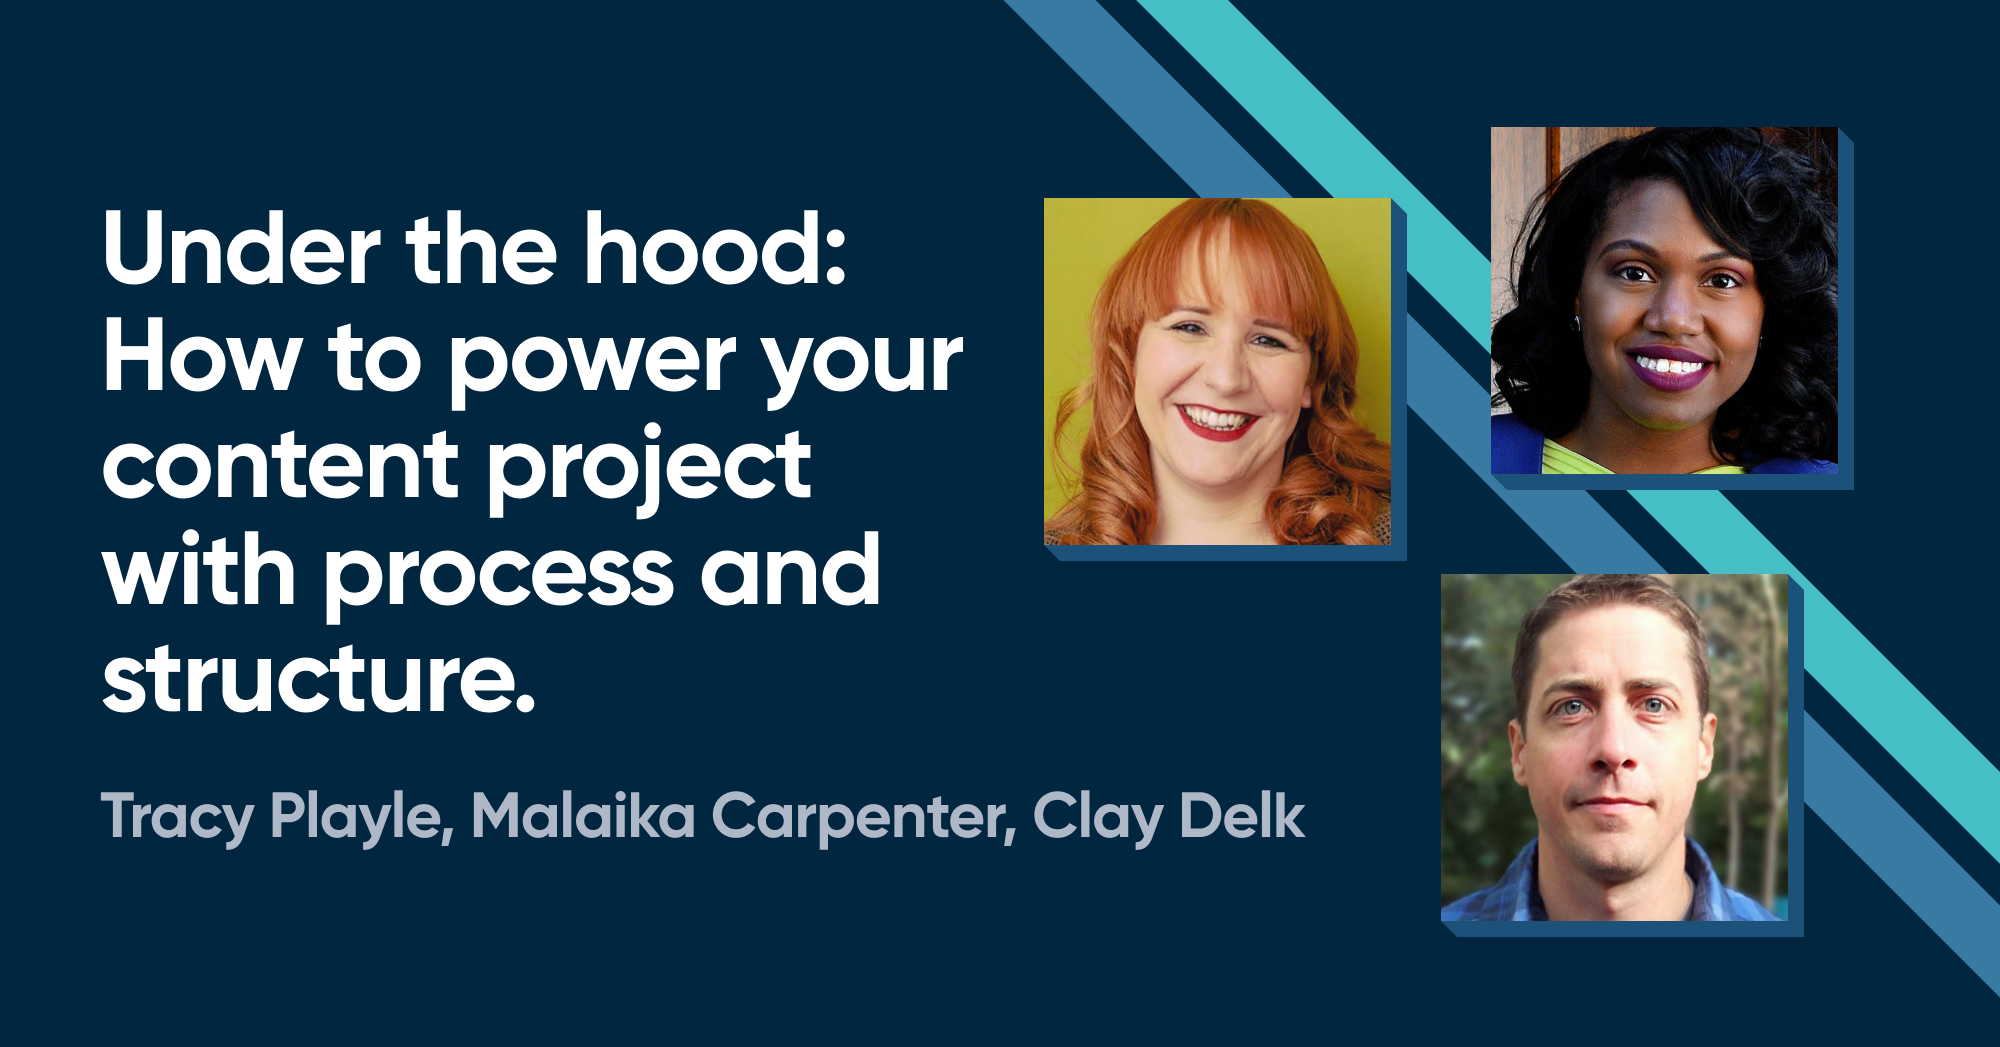 Under the hood: How to power your content project with process and structure